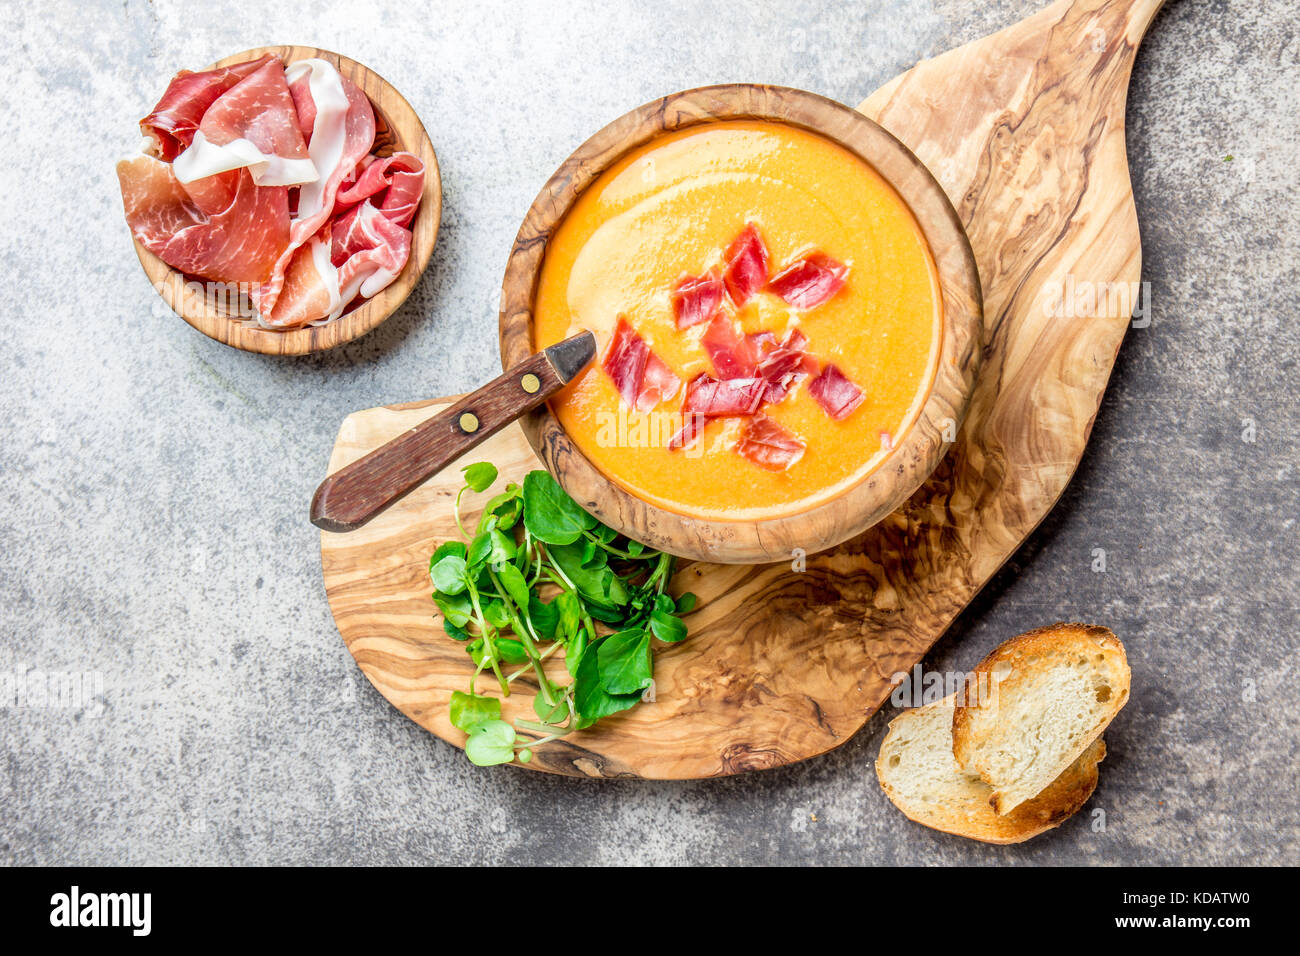 Spanish tomato soup Salmorejo served in olive wooden bowl with ham jamon serrano on stone background. Top view. Stock Photo